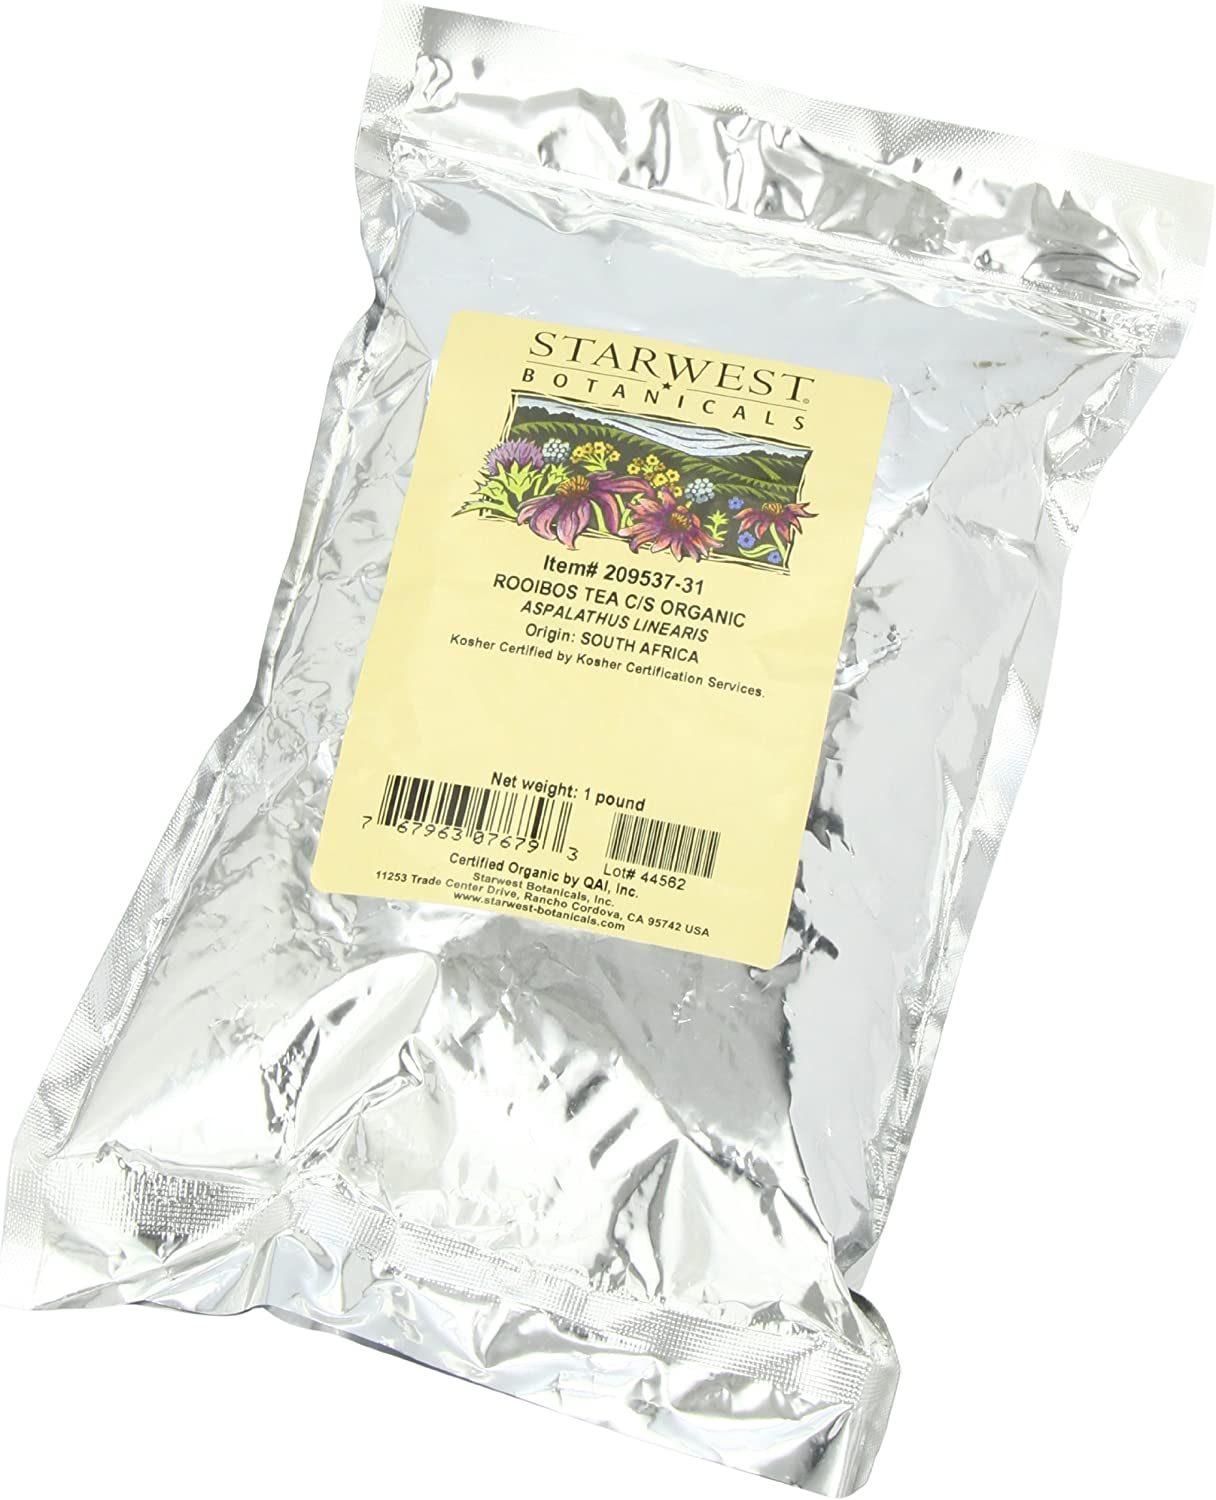 Starwest Botanicals Rooibos Tea C Bargain sale Bags Organic Pack 1-pound S Free shipping anywhere in the nation